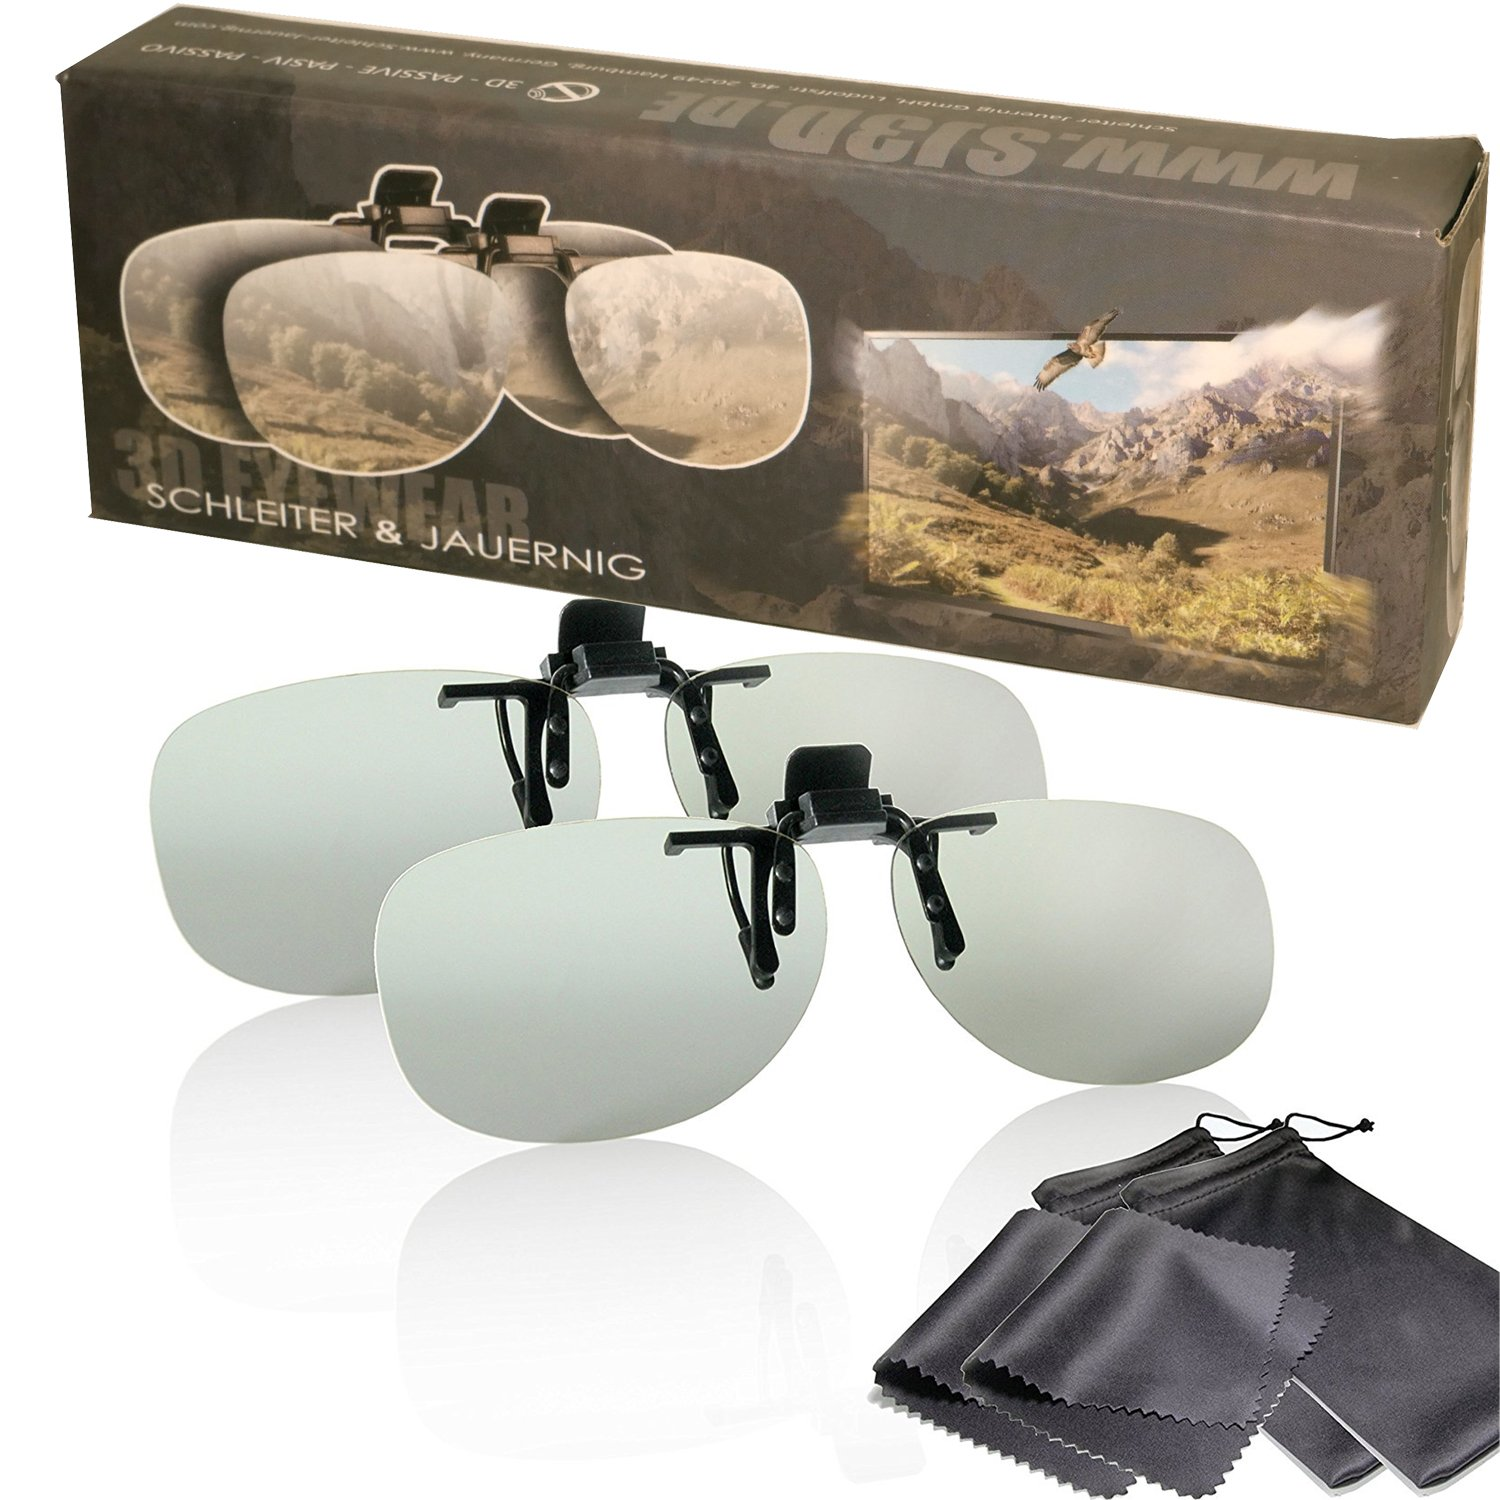 Aviator 3D Glasses with pouch Silver Metal Frame for RealD cinema use and passive 3D TVs such as LG Cinema 3D and Philips Easy 3D- circularly polarized